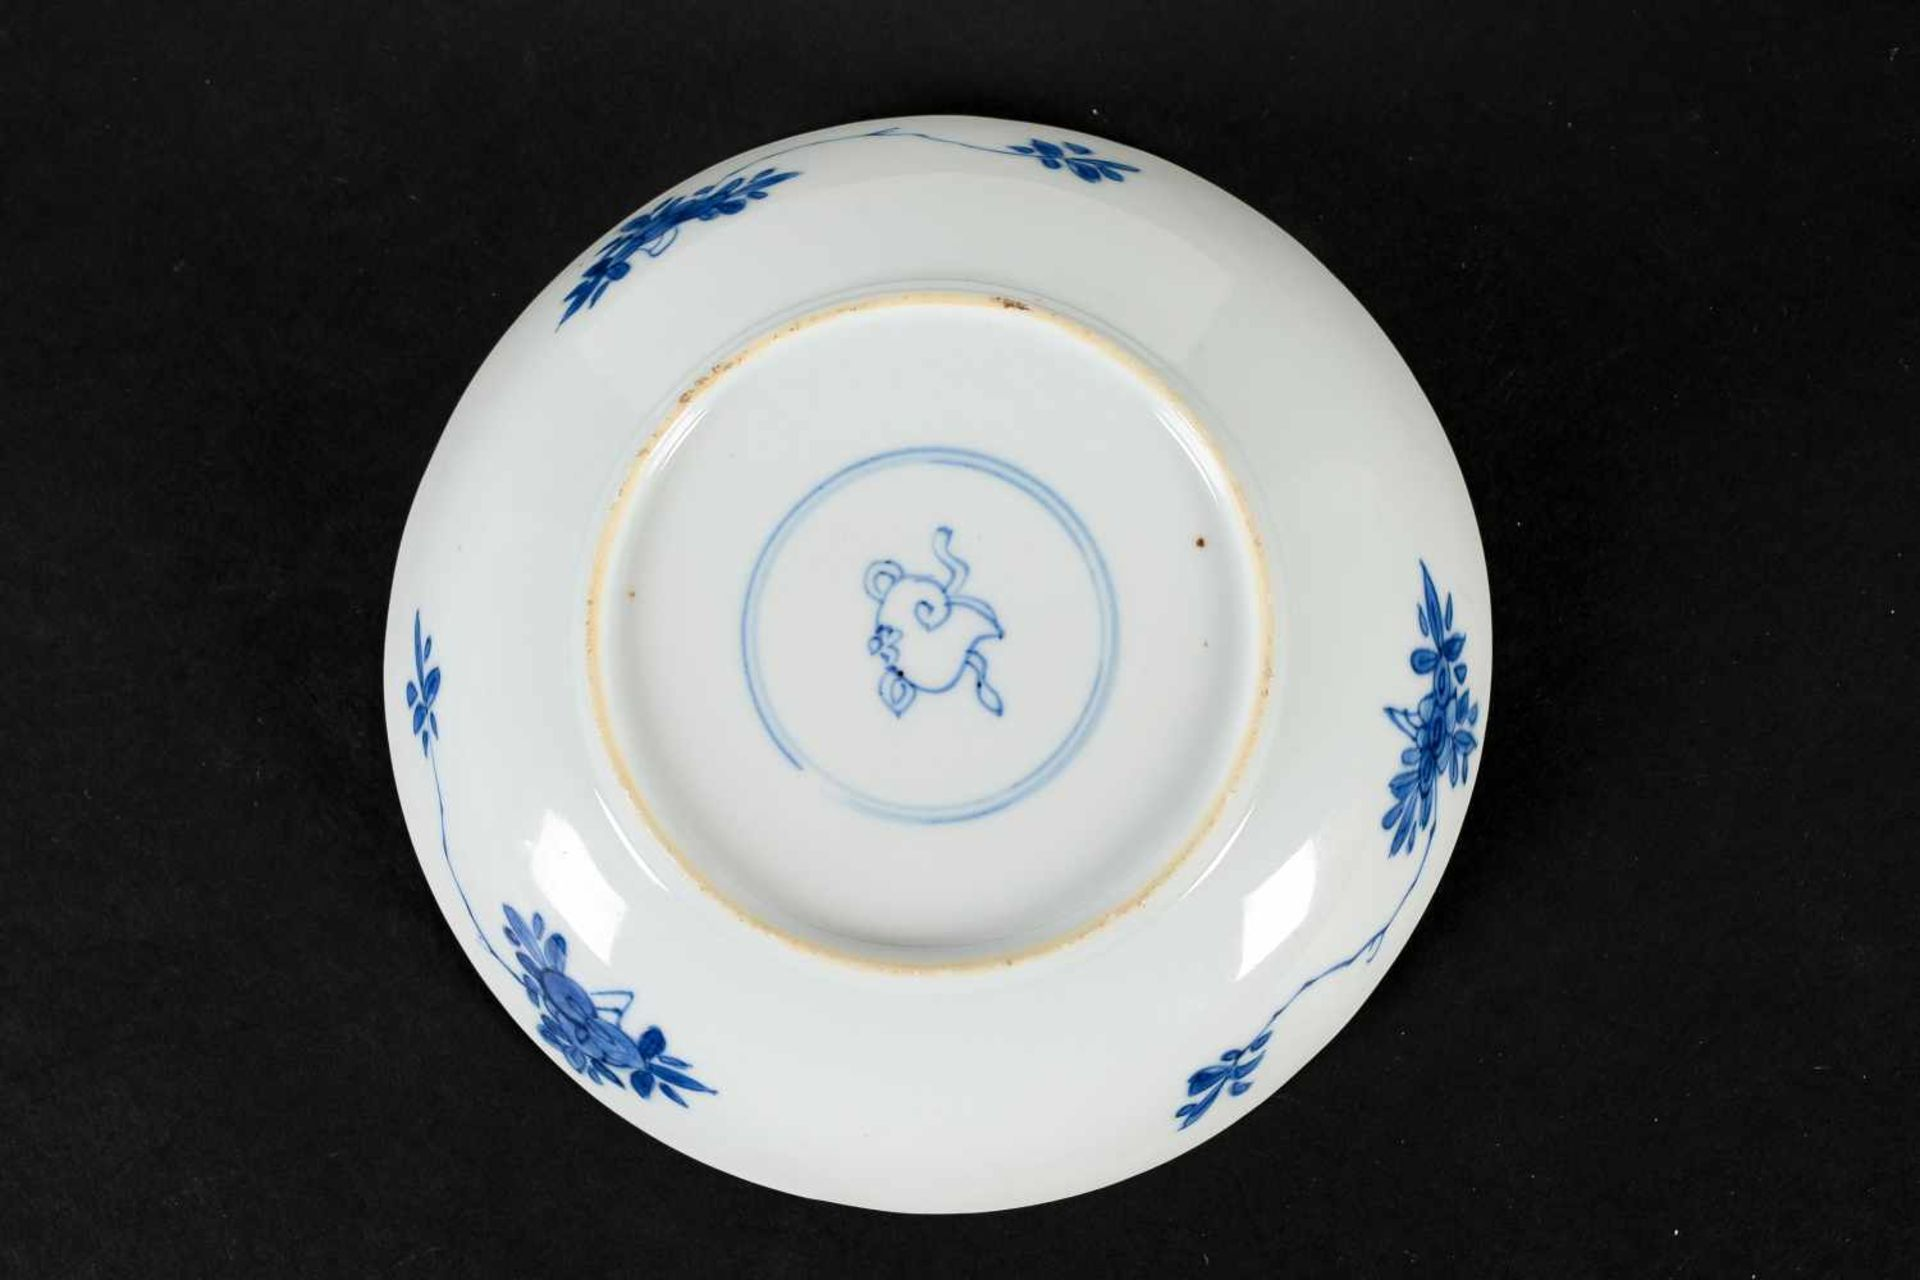 A blue and white porcelain lidded cup with two handles on a deep saucer, decorated with flowers. - Bild 4 aus 9